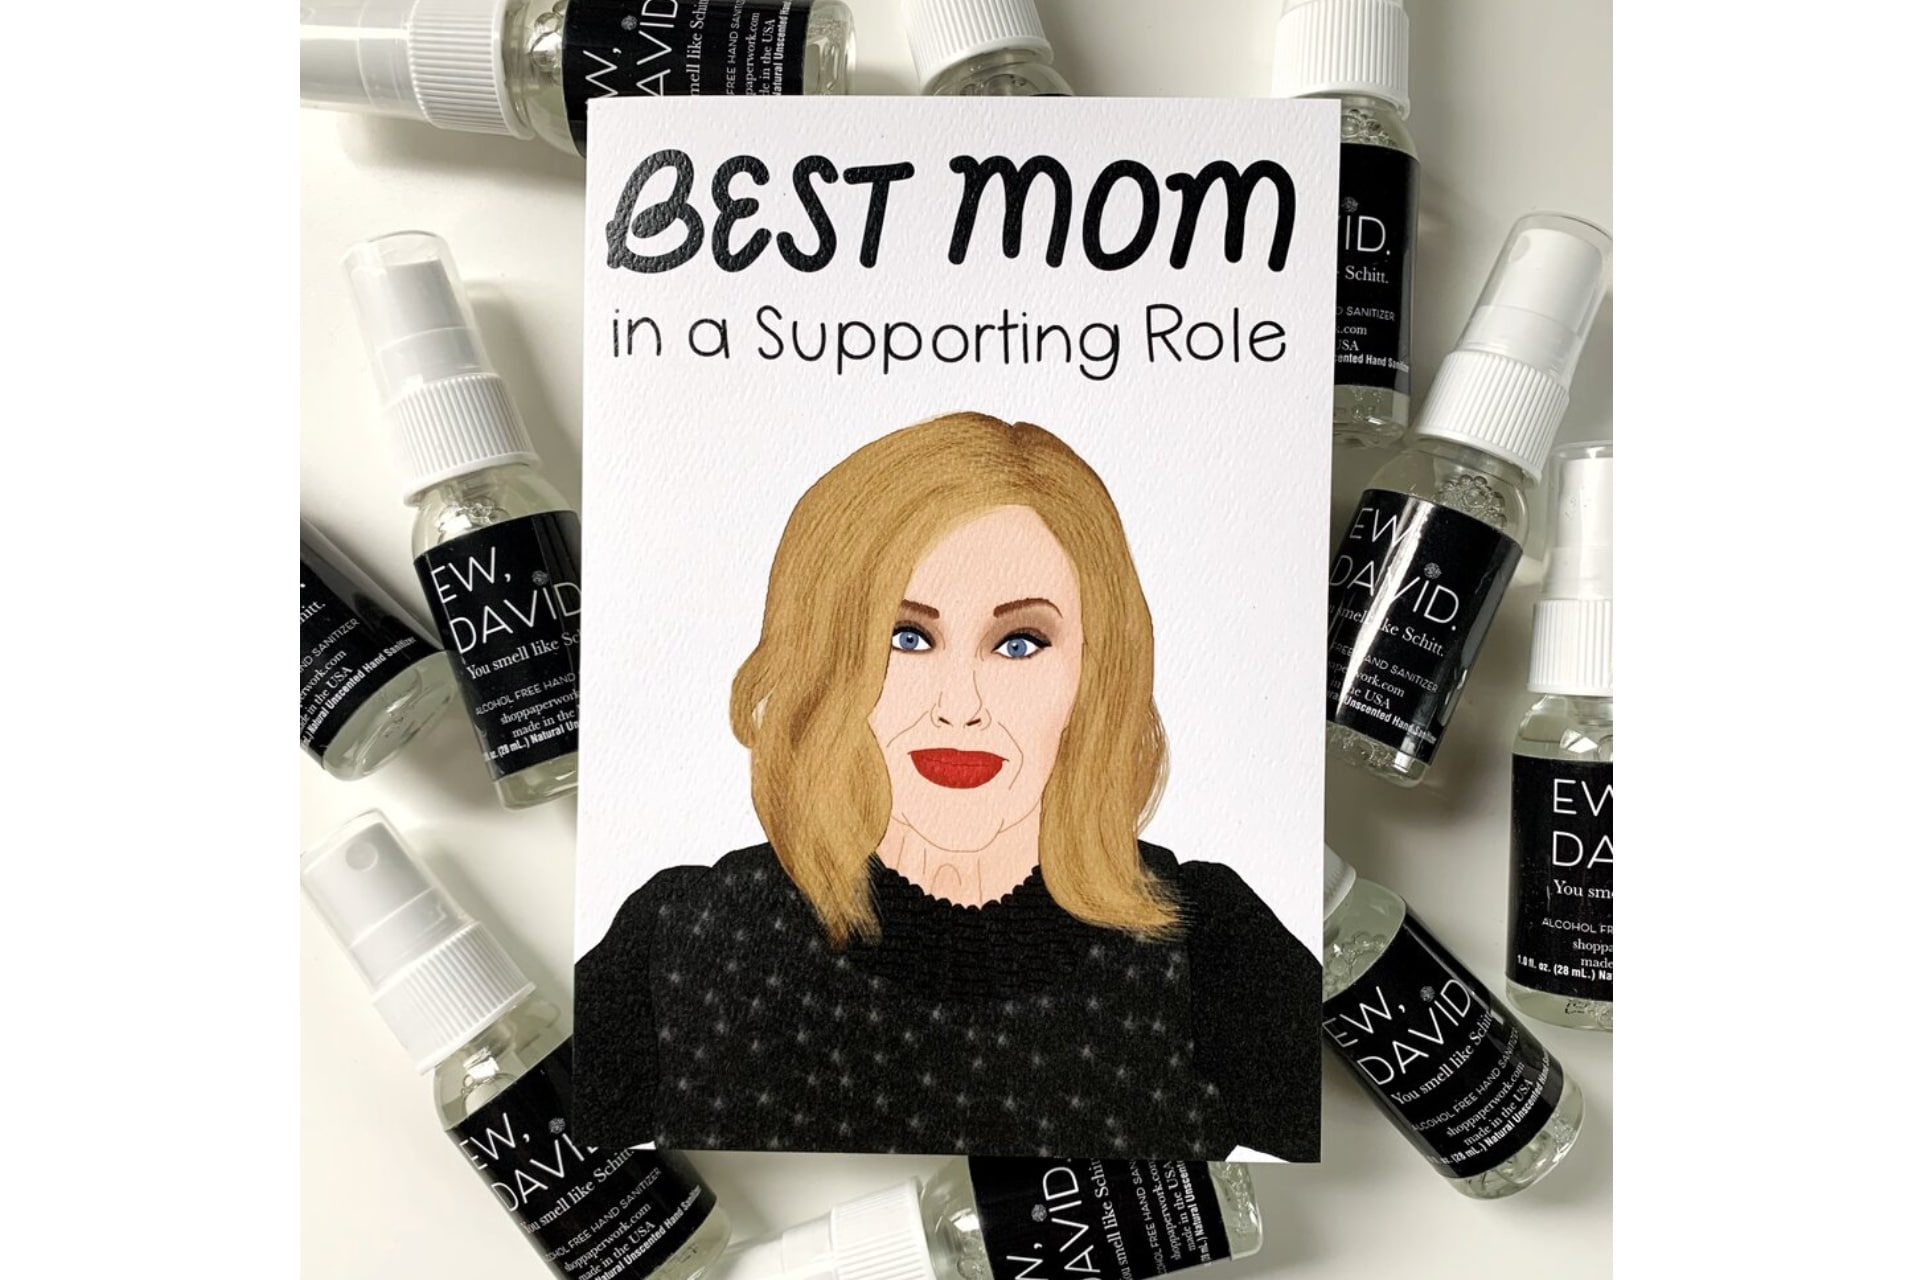 Schitt's creek card that says: Best mom in a supporting role